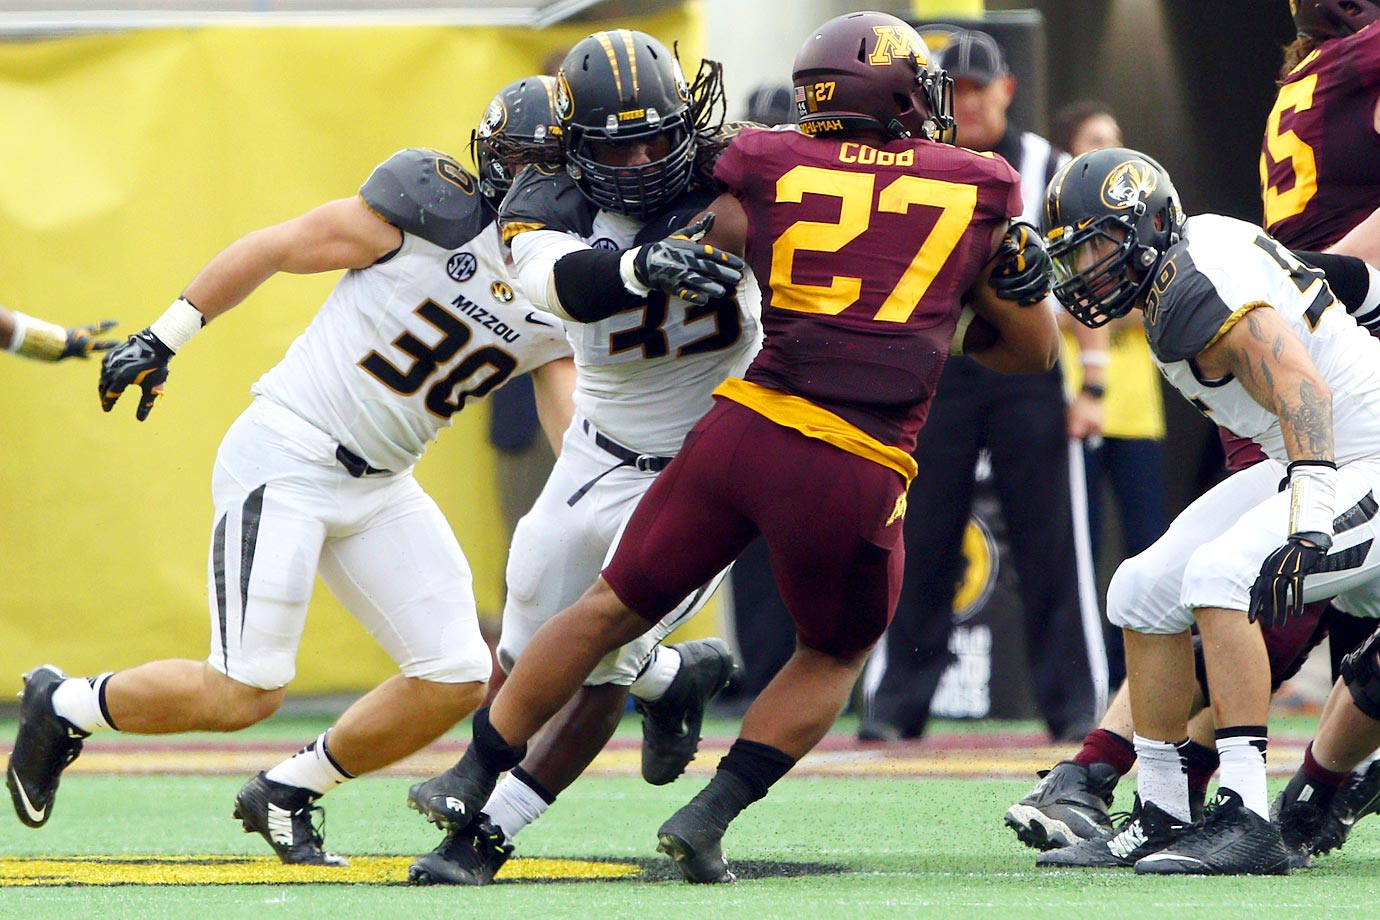 The senior dominated Minnesota, racking up 10 tackles, four TFLs, 1.5 sacks and a forced fumble.